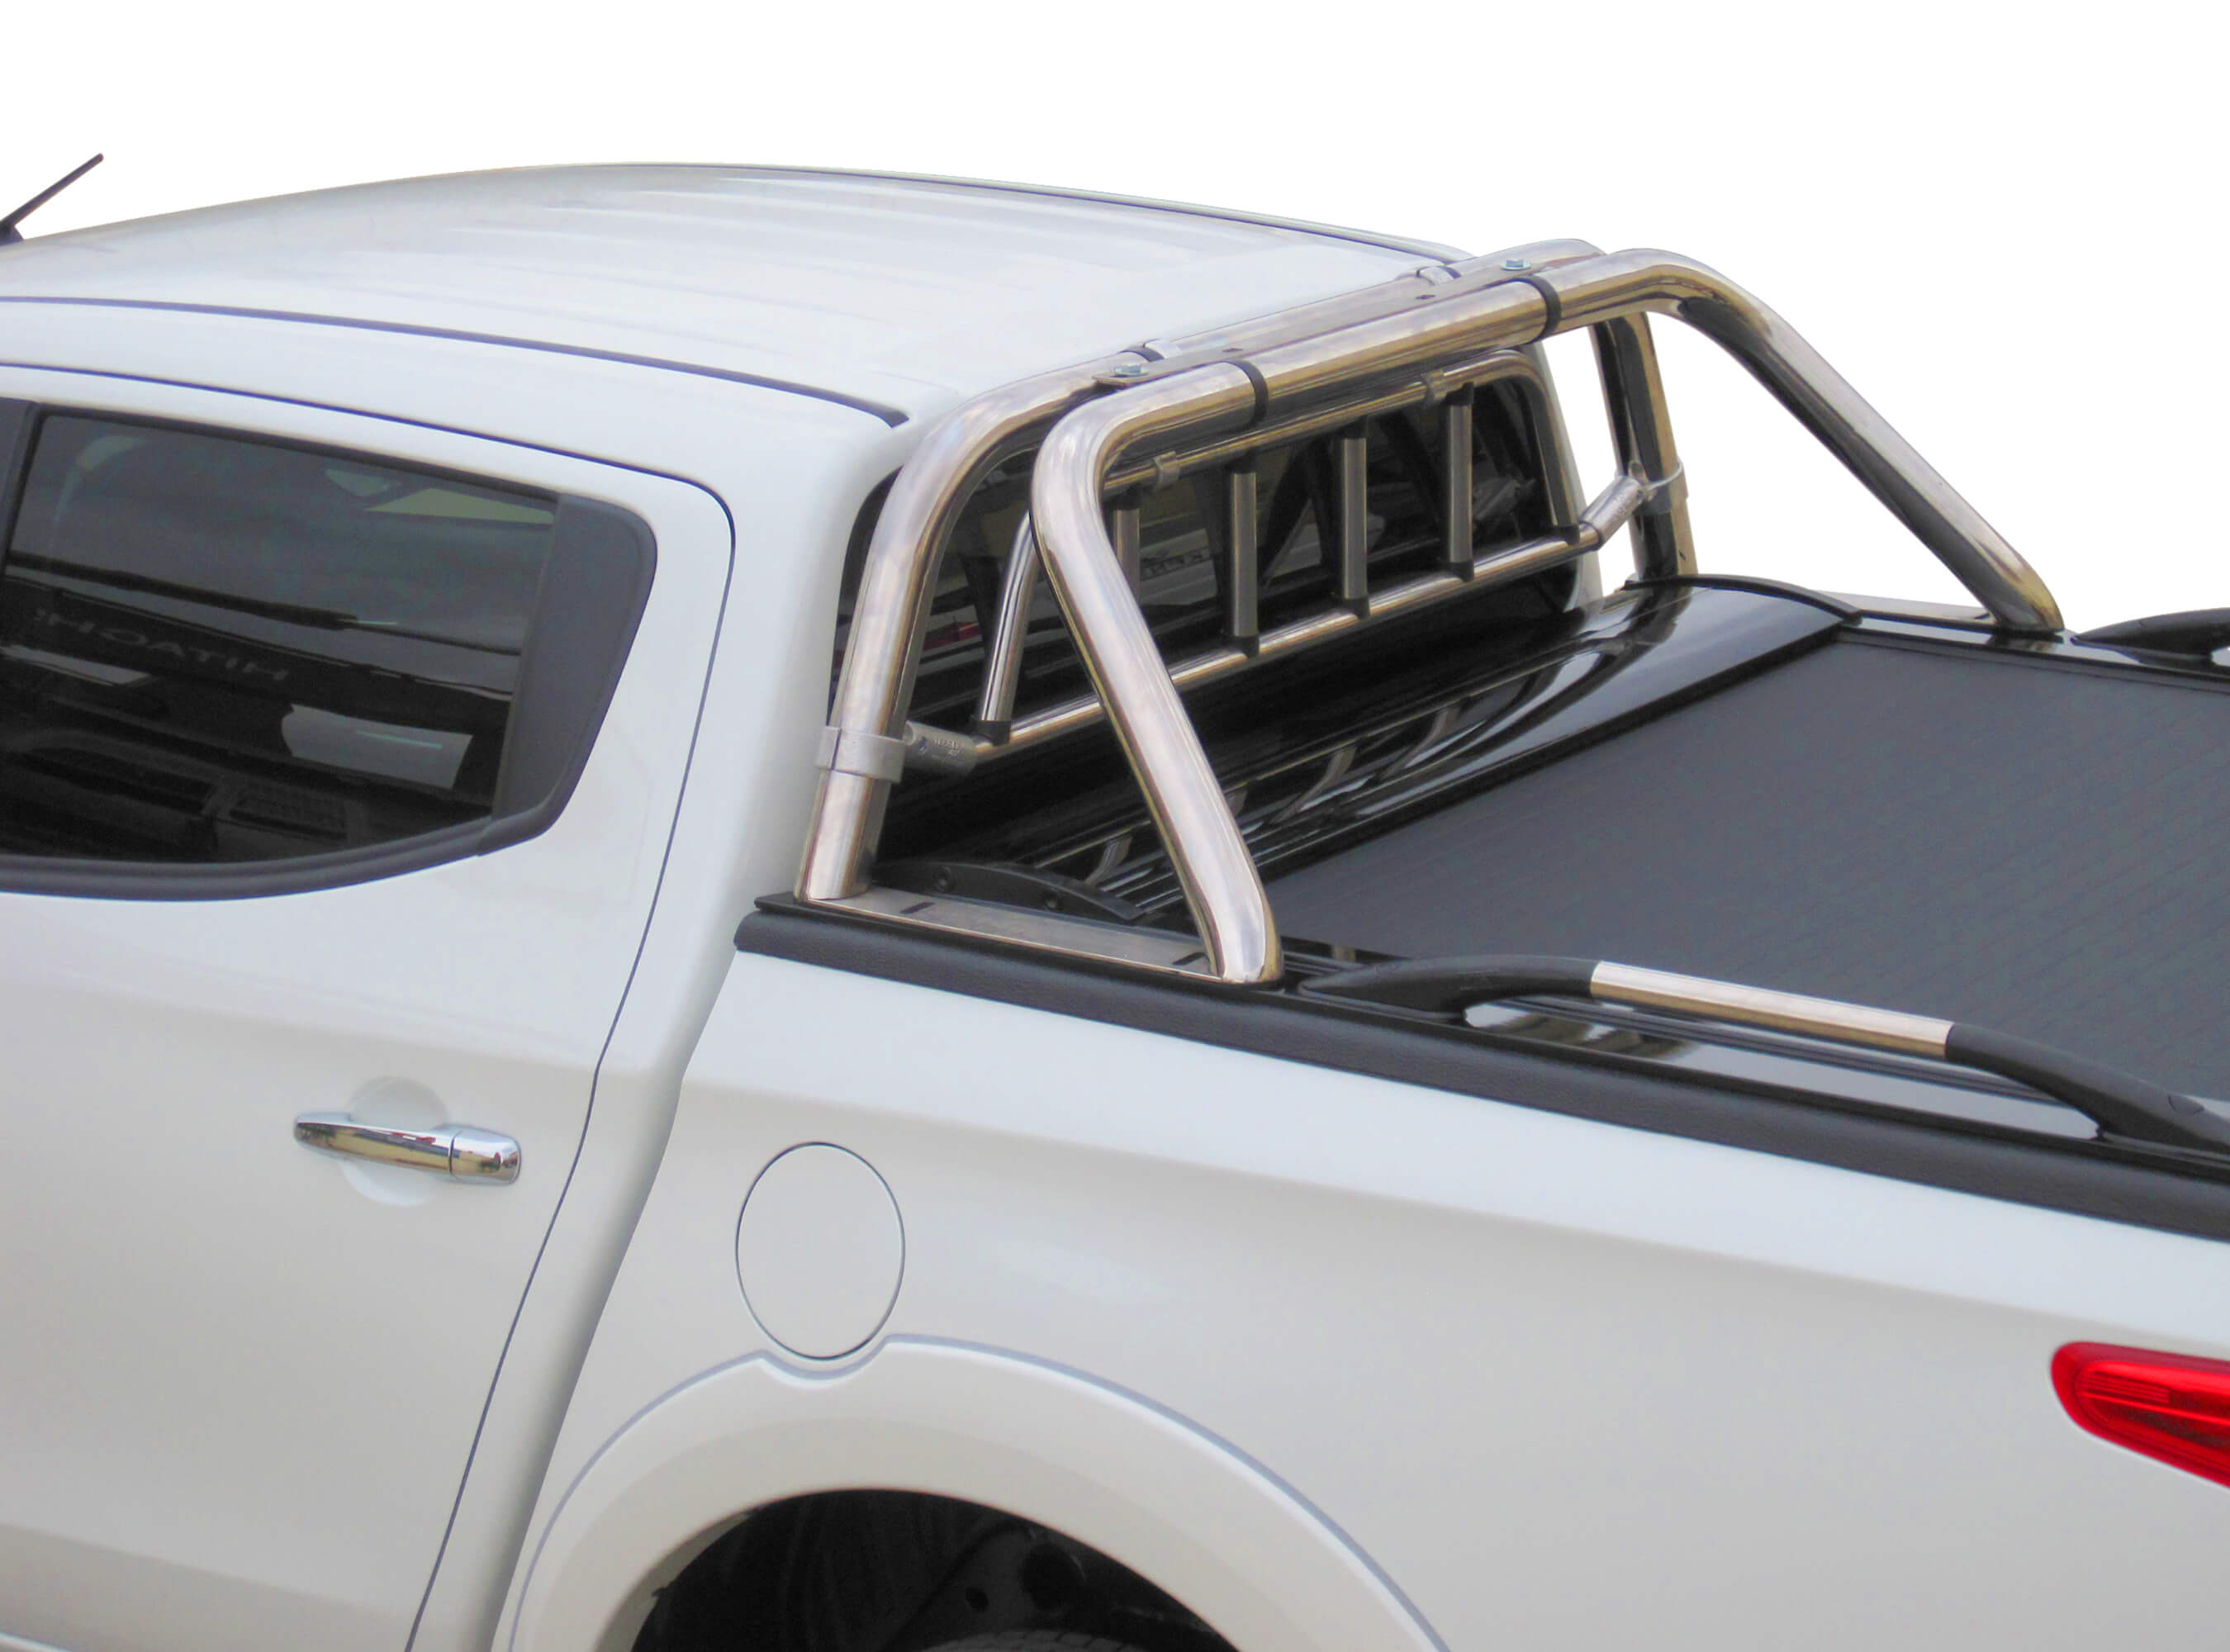 Stainless steel two legs roll bar with protective grille guard